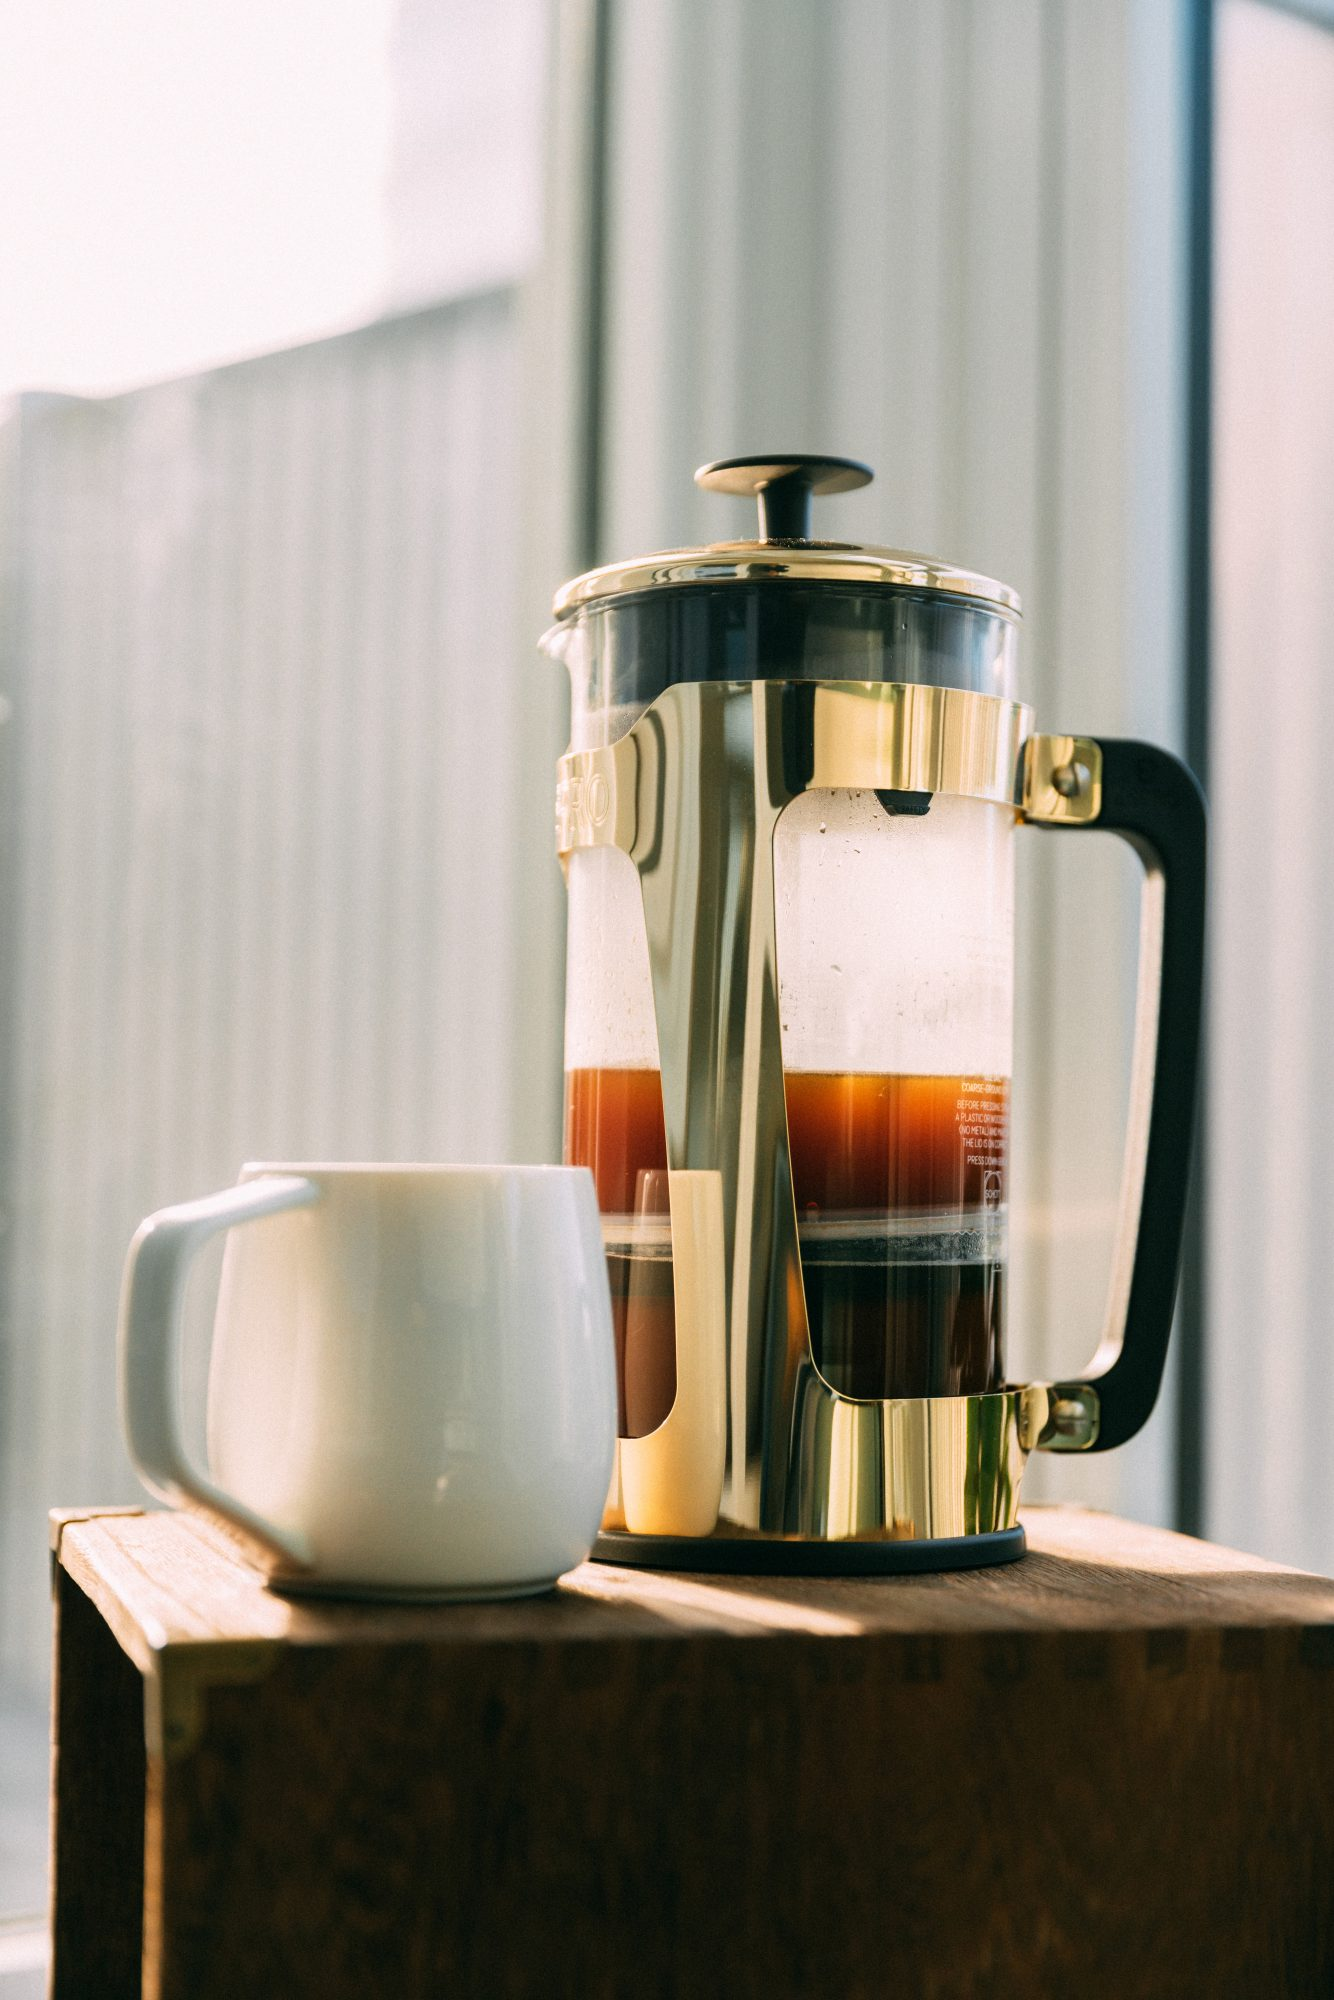 French press coffee maker and mug